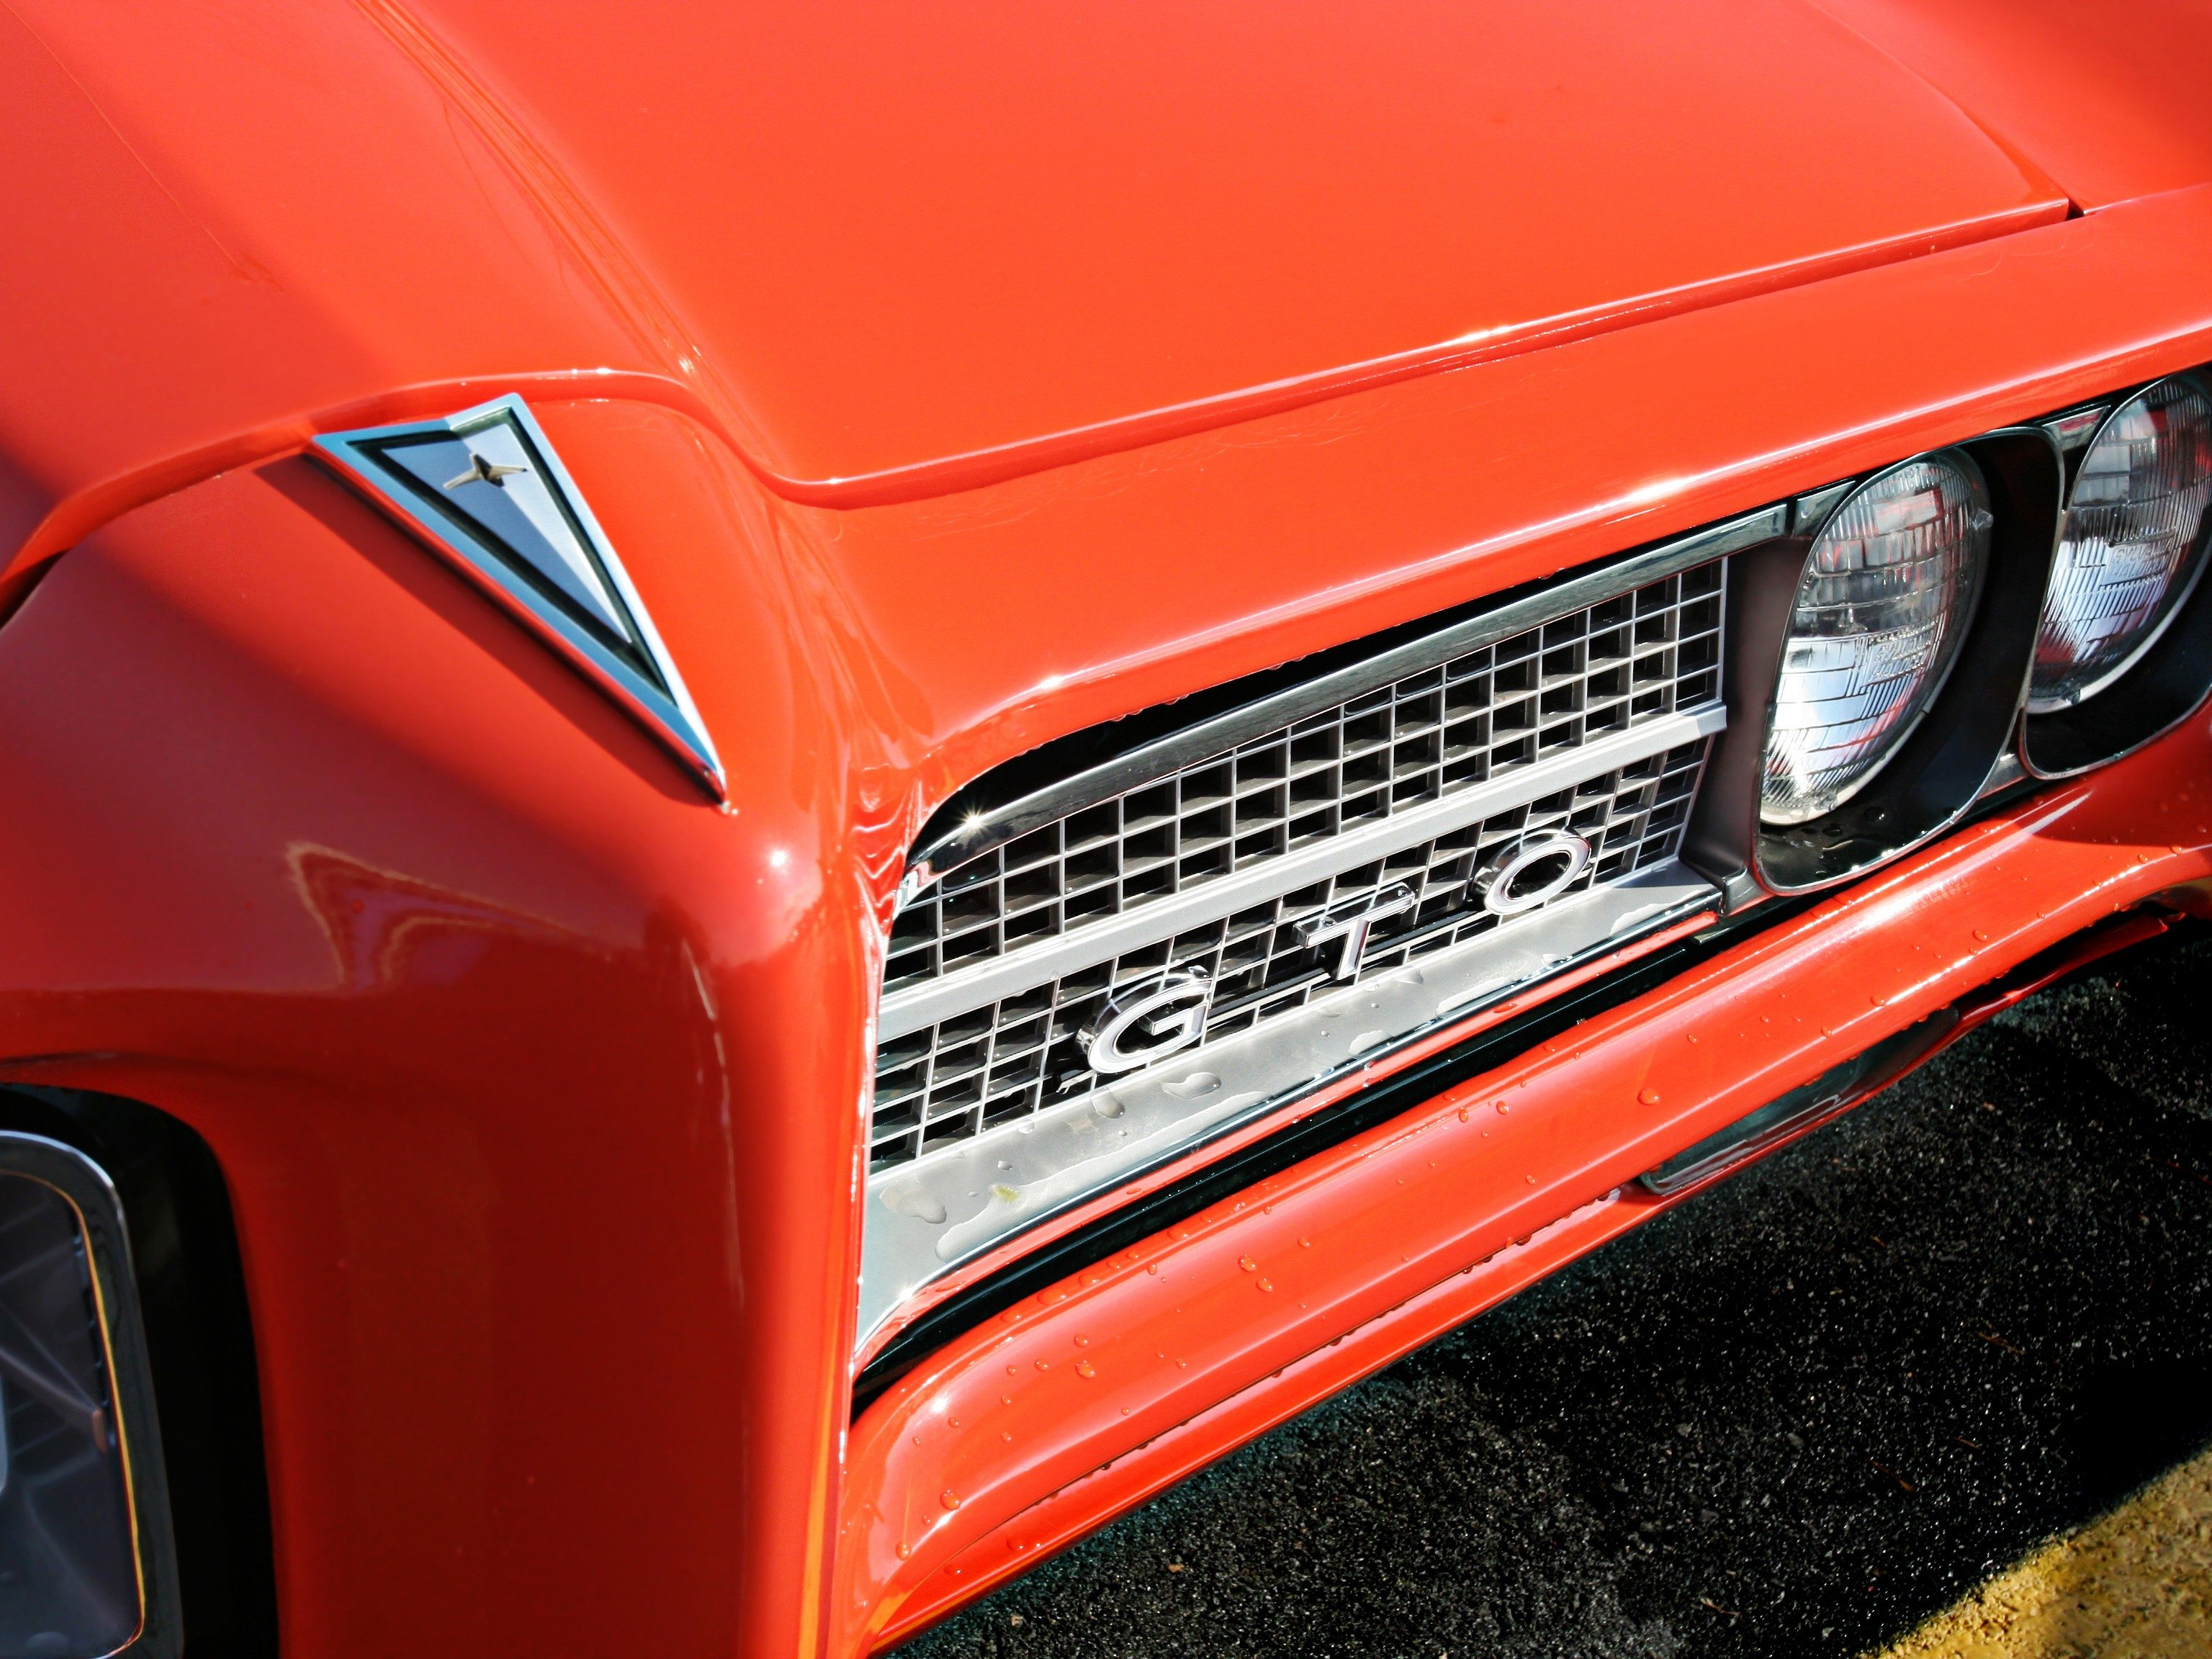 Choosing Aftermarket Auto Parts for Your Classic Car